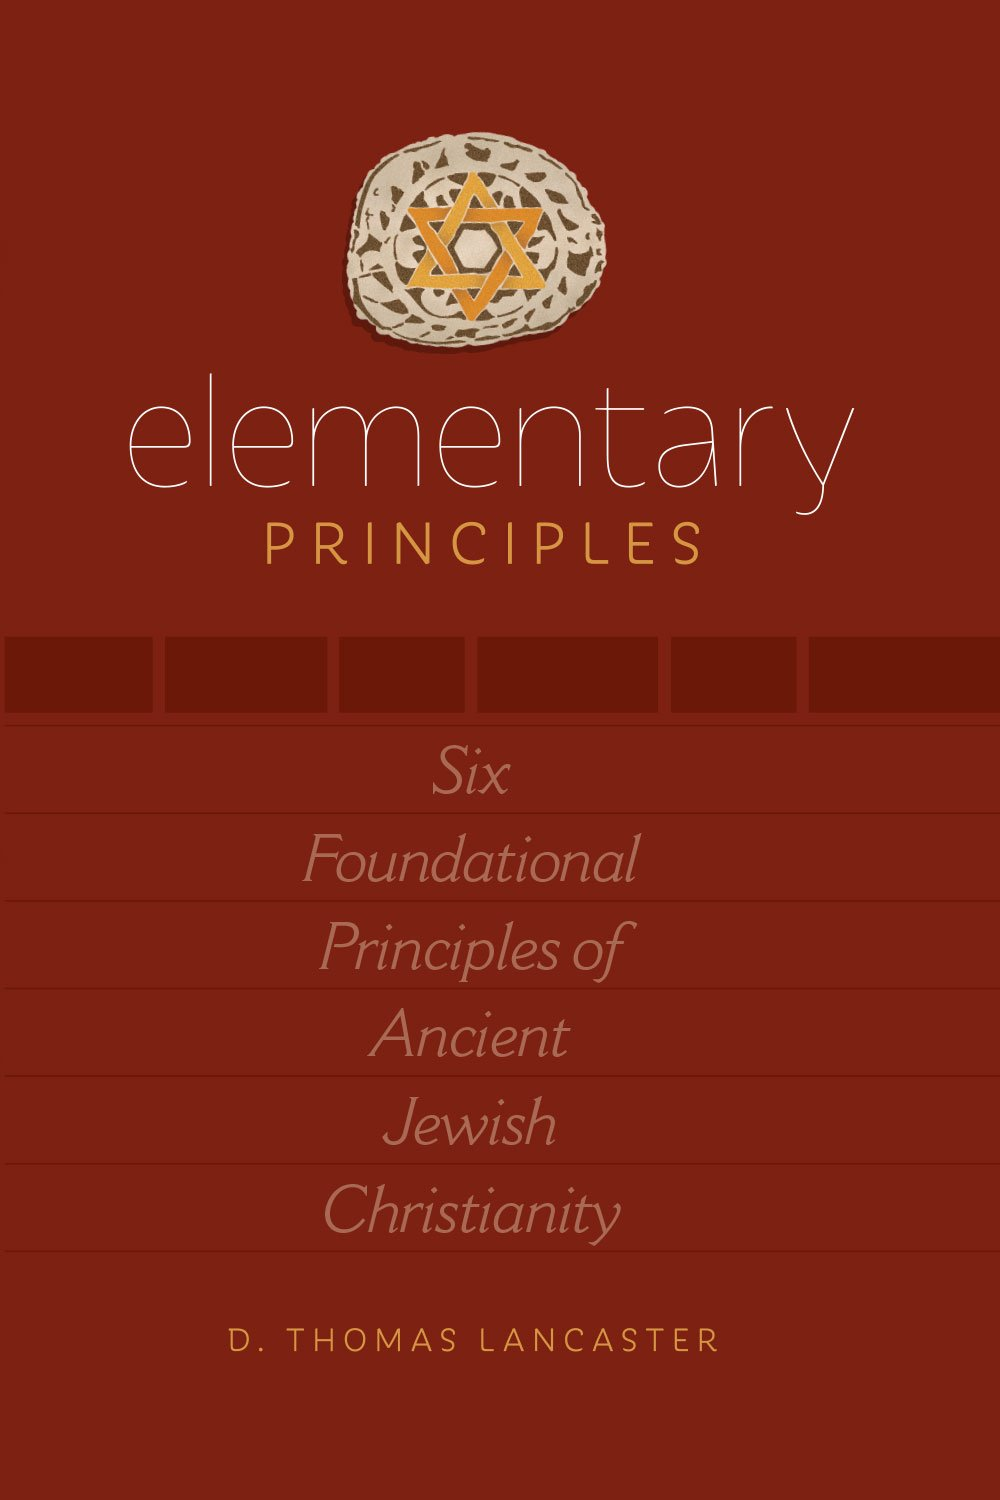 Download Elementary Principles: Six Foundational Principles of Ancient Jewish Christianity pdf